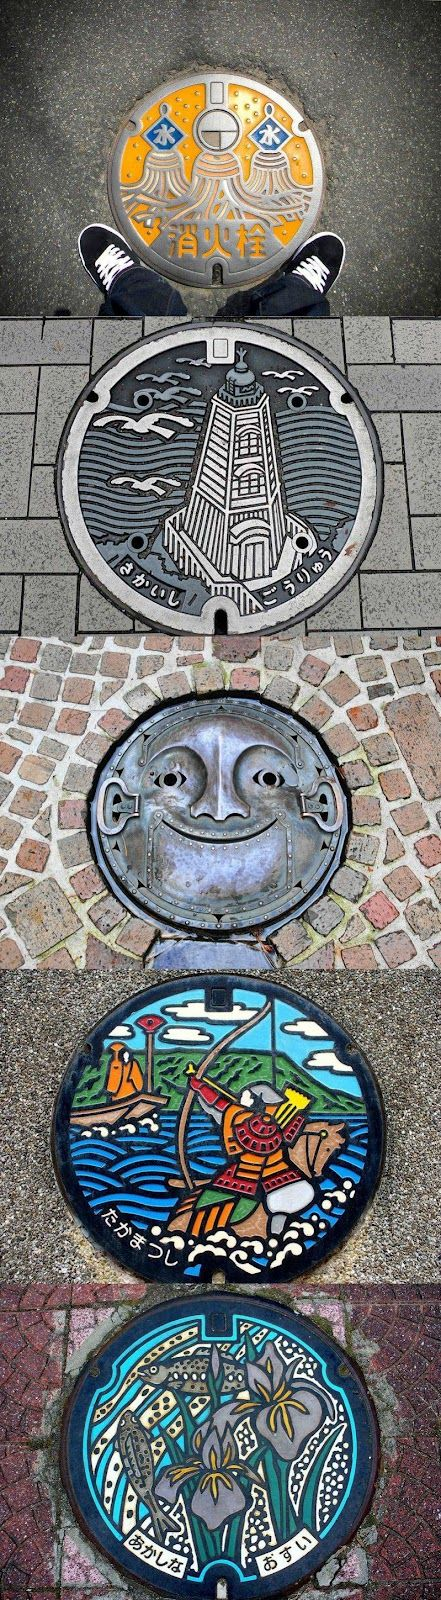 streetart - japanese art of man hole covers